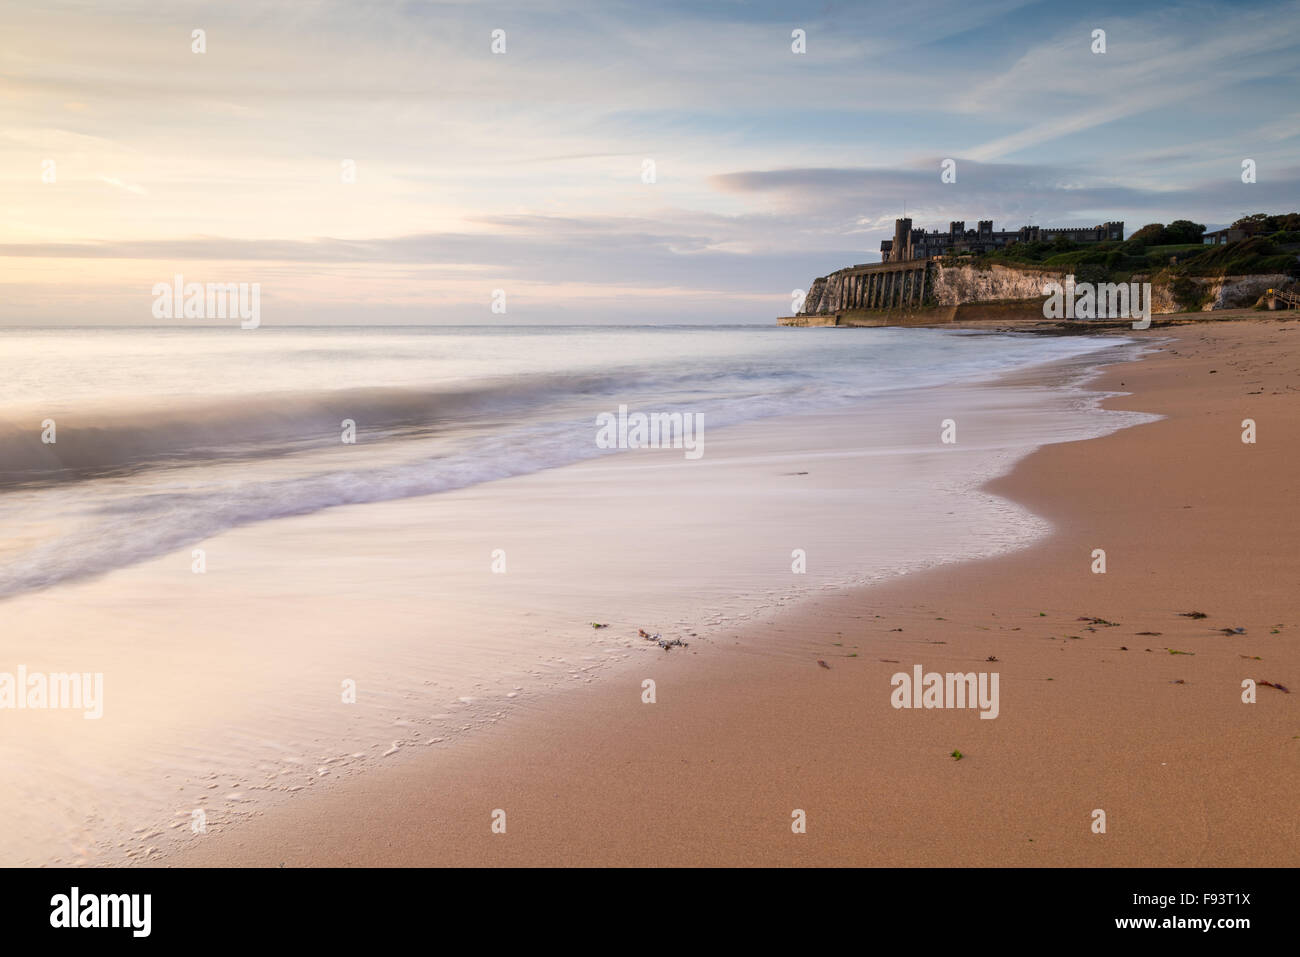 Sunrise view of Kingsgate Castle on the cliffs at Kingsgate Bay, Broadstairs, Kent. - Stock Image